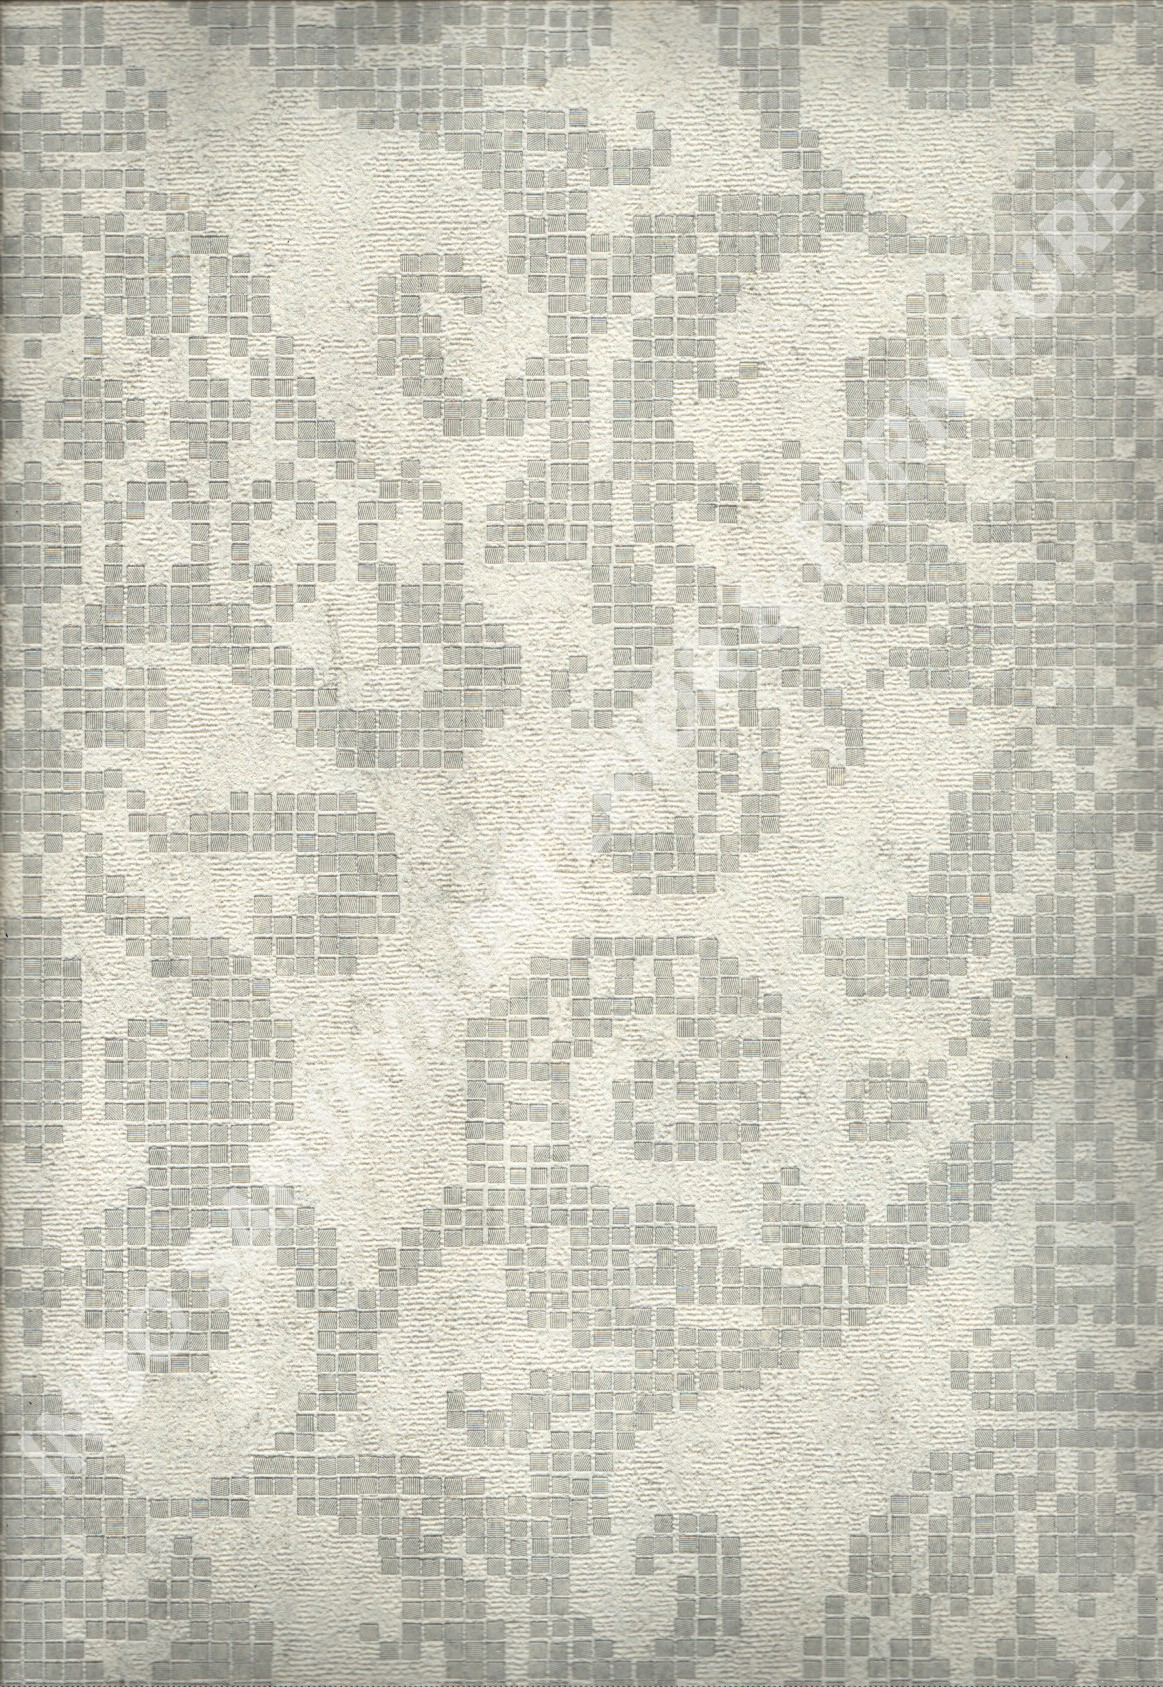 wallpaper   Wallpaper Bunga 3026:3026 corak  warna